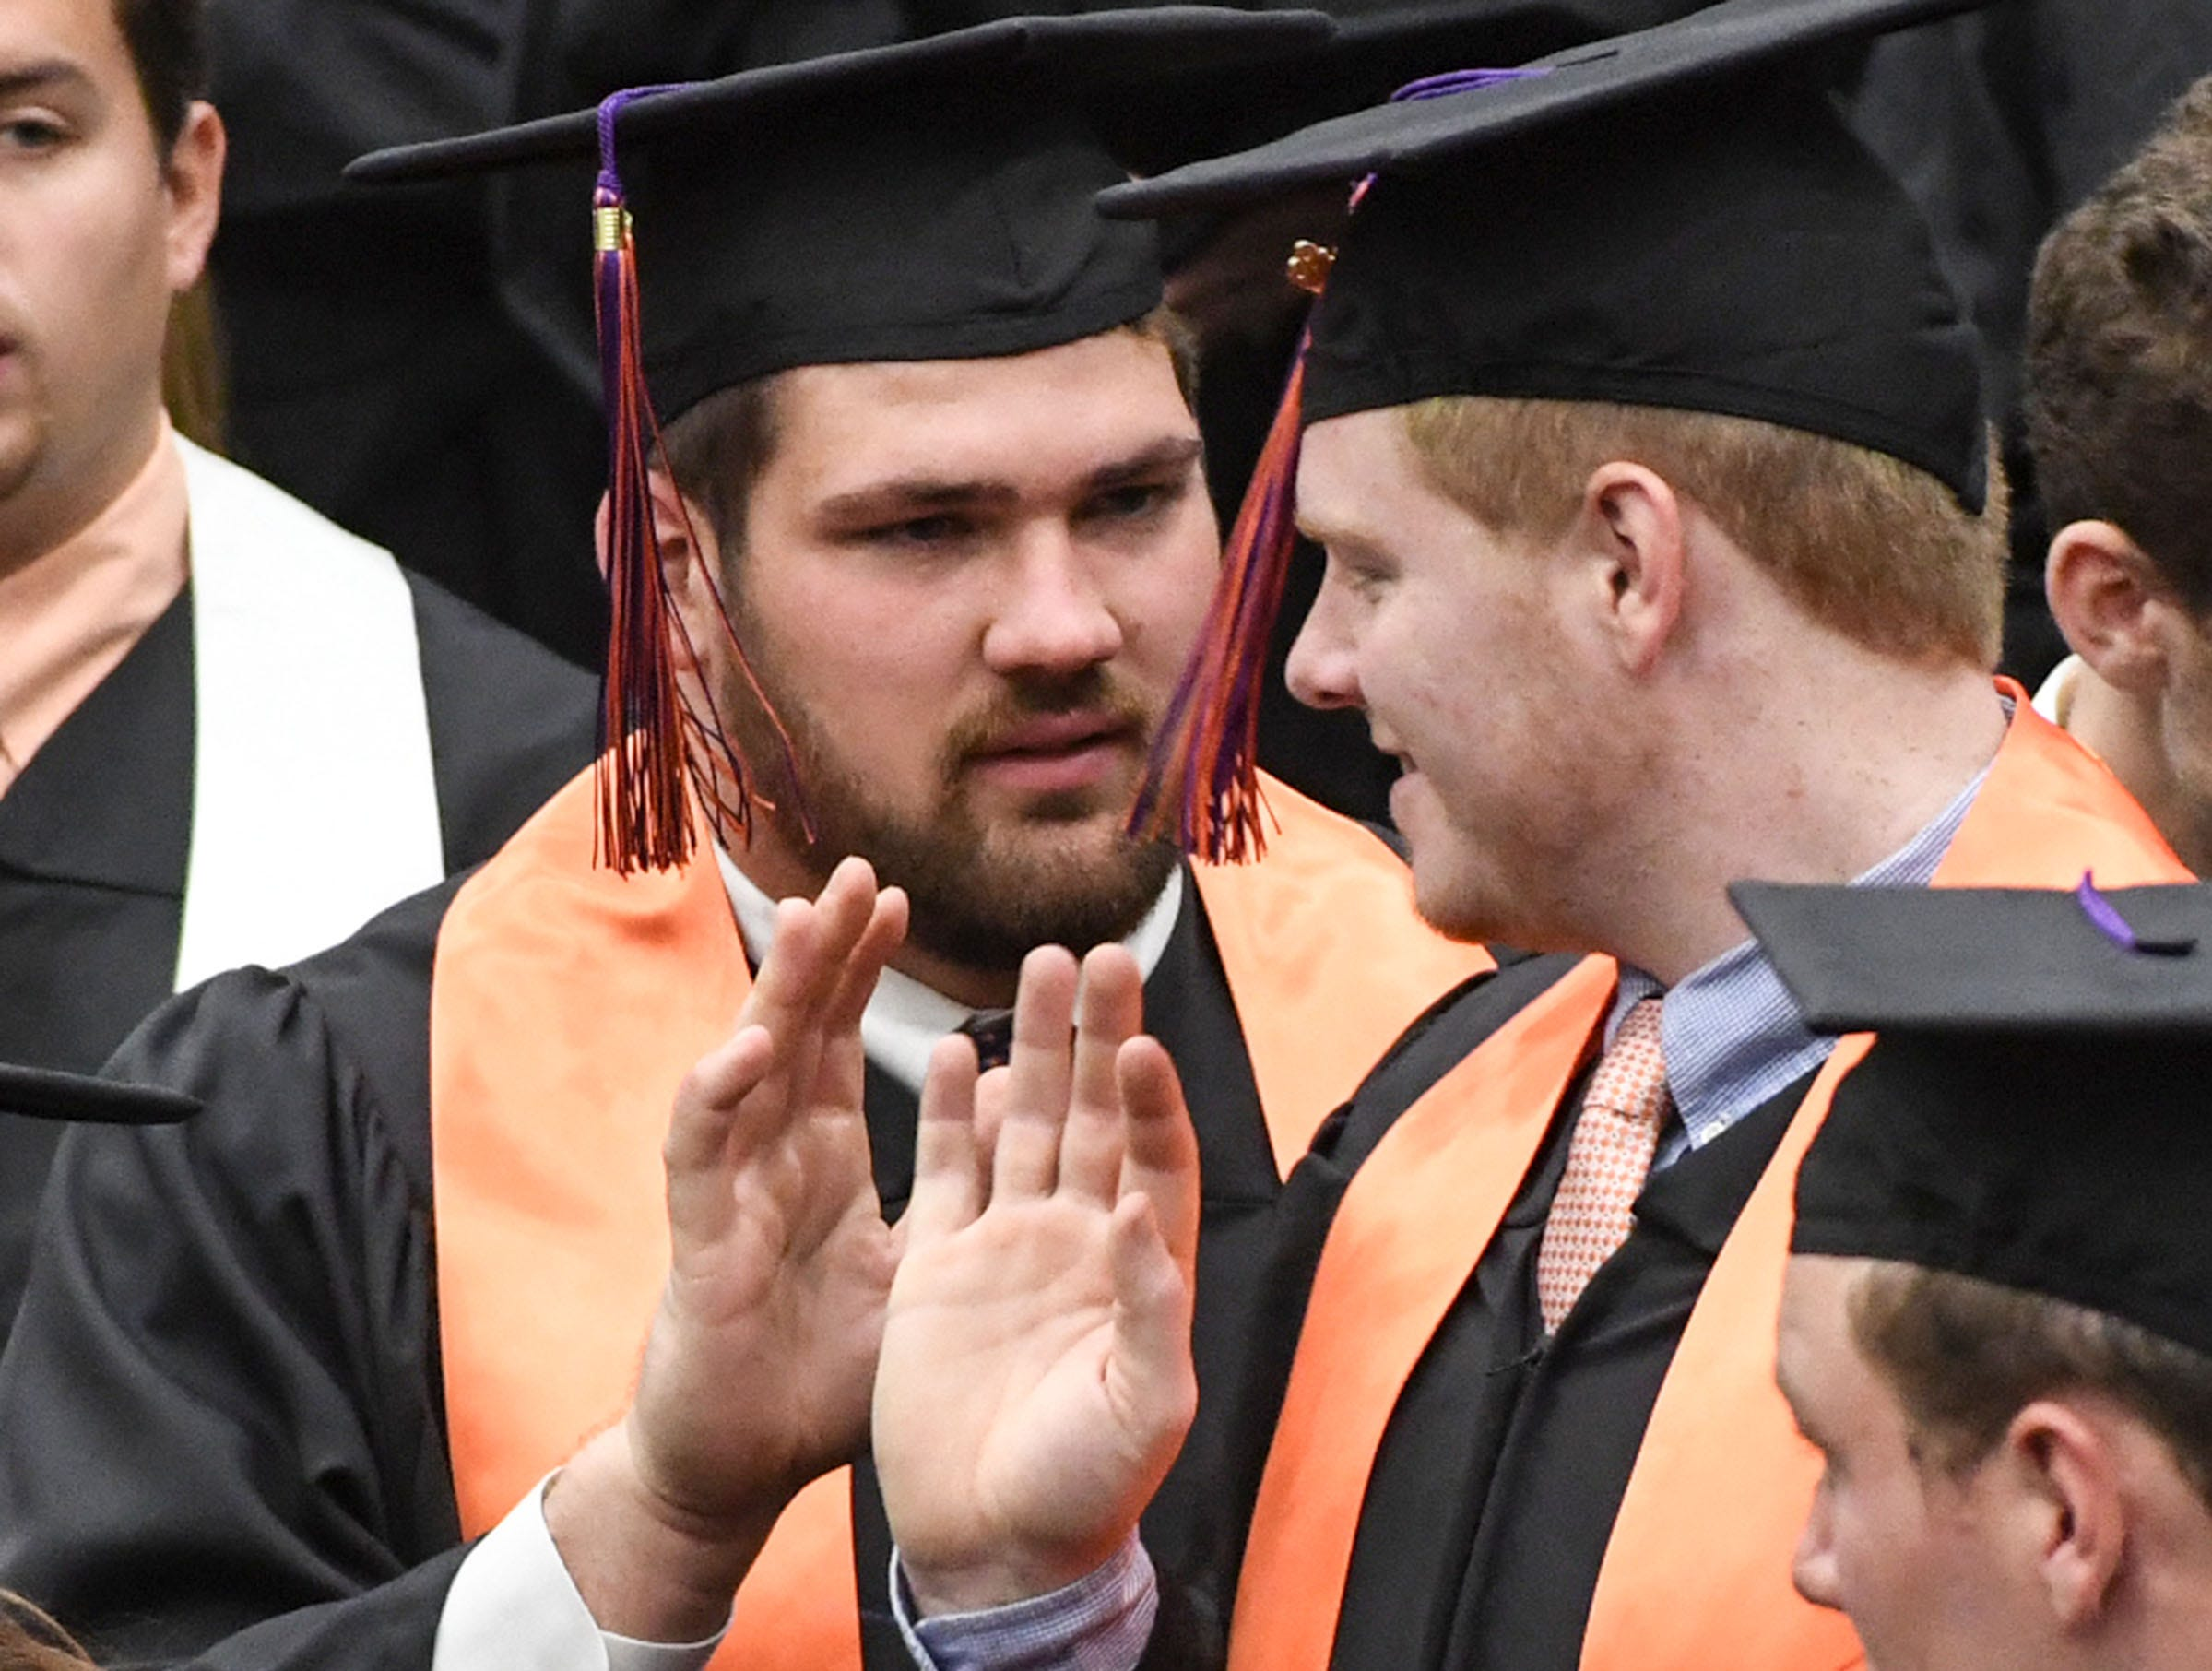 Clemson offensive lineman Gage Cervenka, left, a criminal justice major, gives a high five to football teammate and graduate Zach Giella before the Clemson University morning graduation ceremony Thursday morning in Littlejohn Coliseum in Clemson.